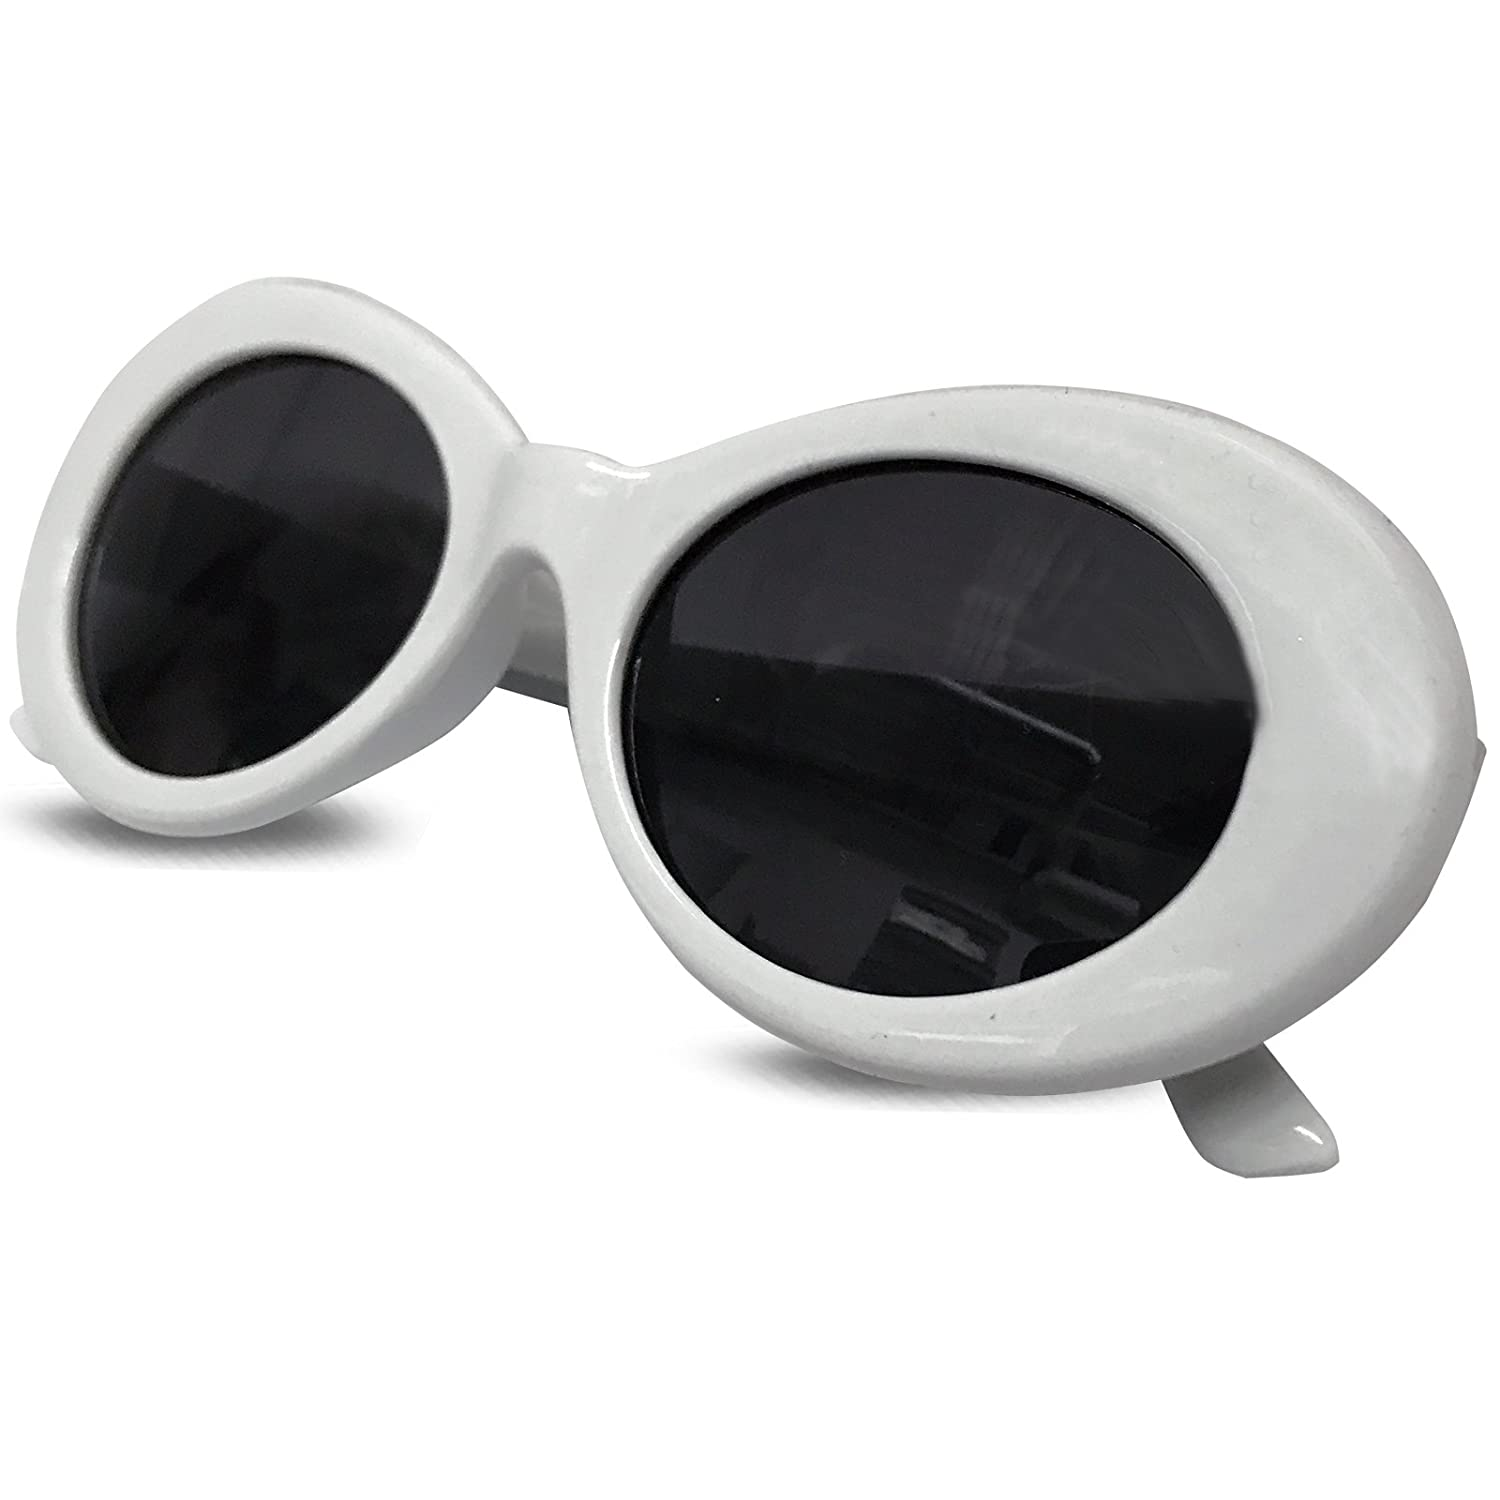 3c5342d611 Clout goggles sunglasses meme amazon real bold retro oval thick frame  meaning urban authentic aliexpress white brand lenses bulk order cheap cost  cartoon ...